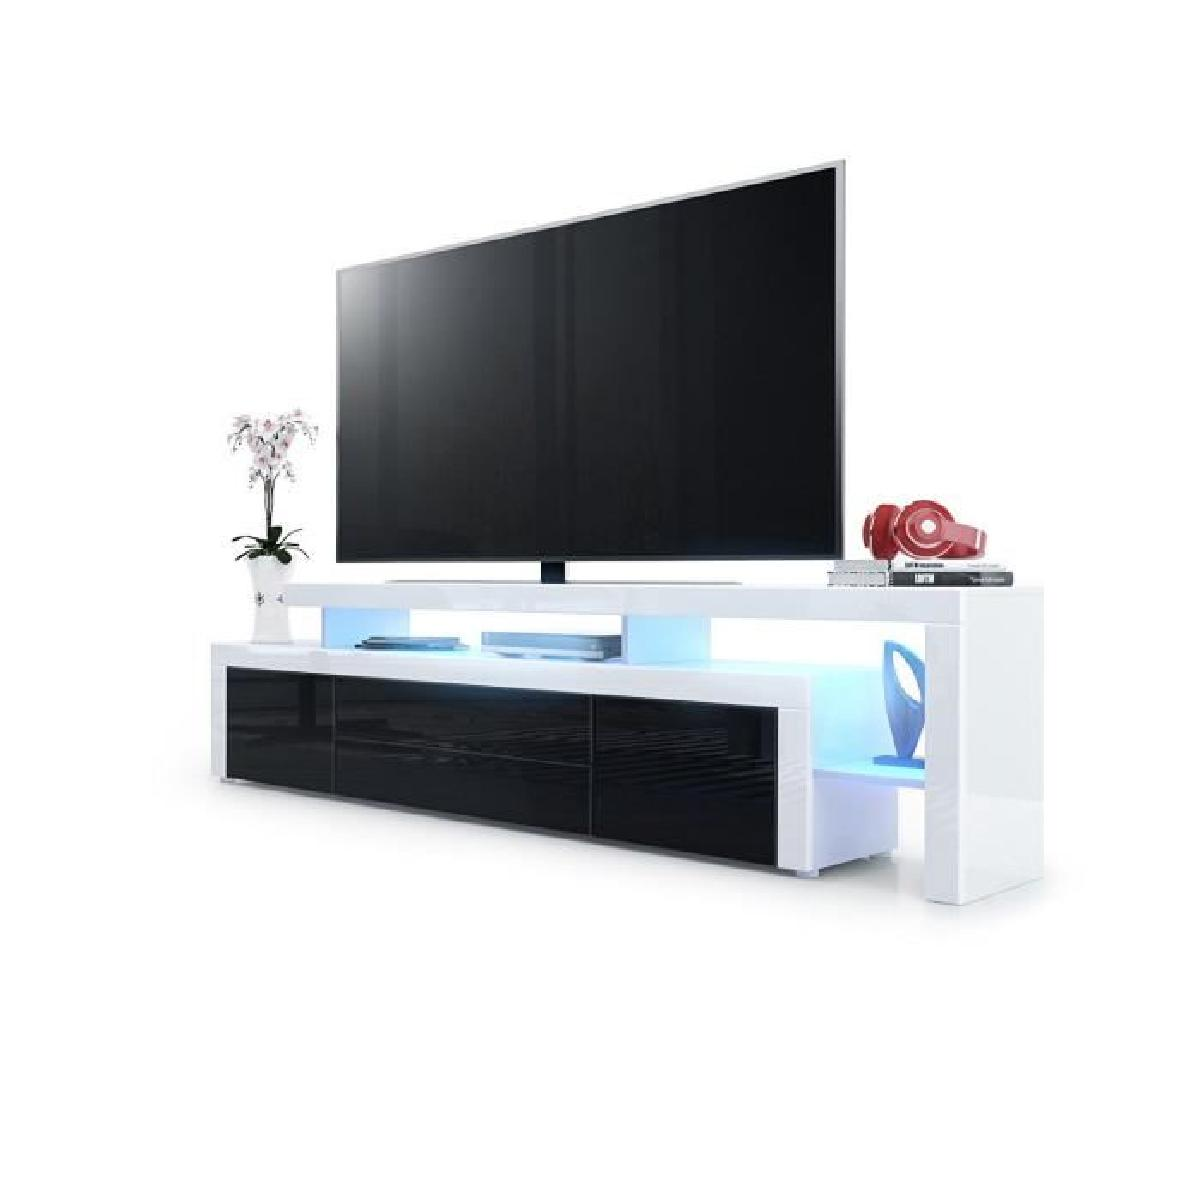 meuble tv noir led id es de d coration int rieure french decor. Black Bedroom Furniture Sets. Home Design Ideas